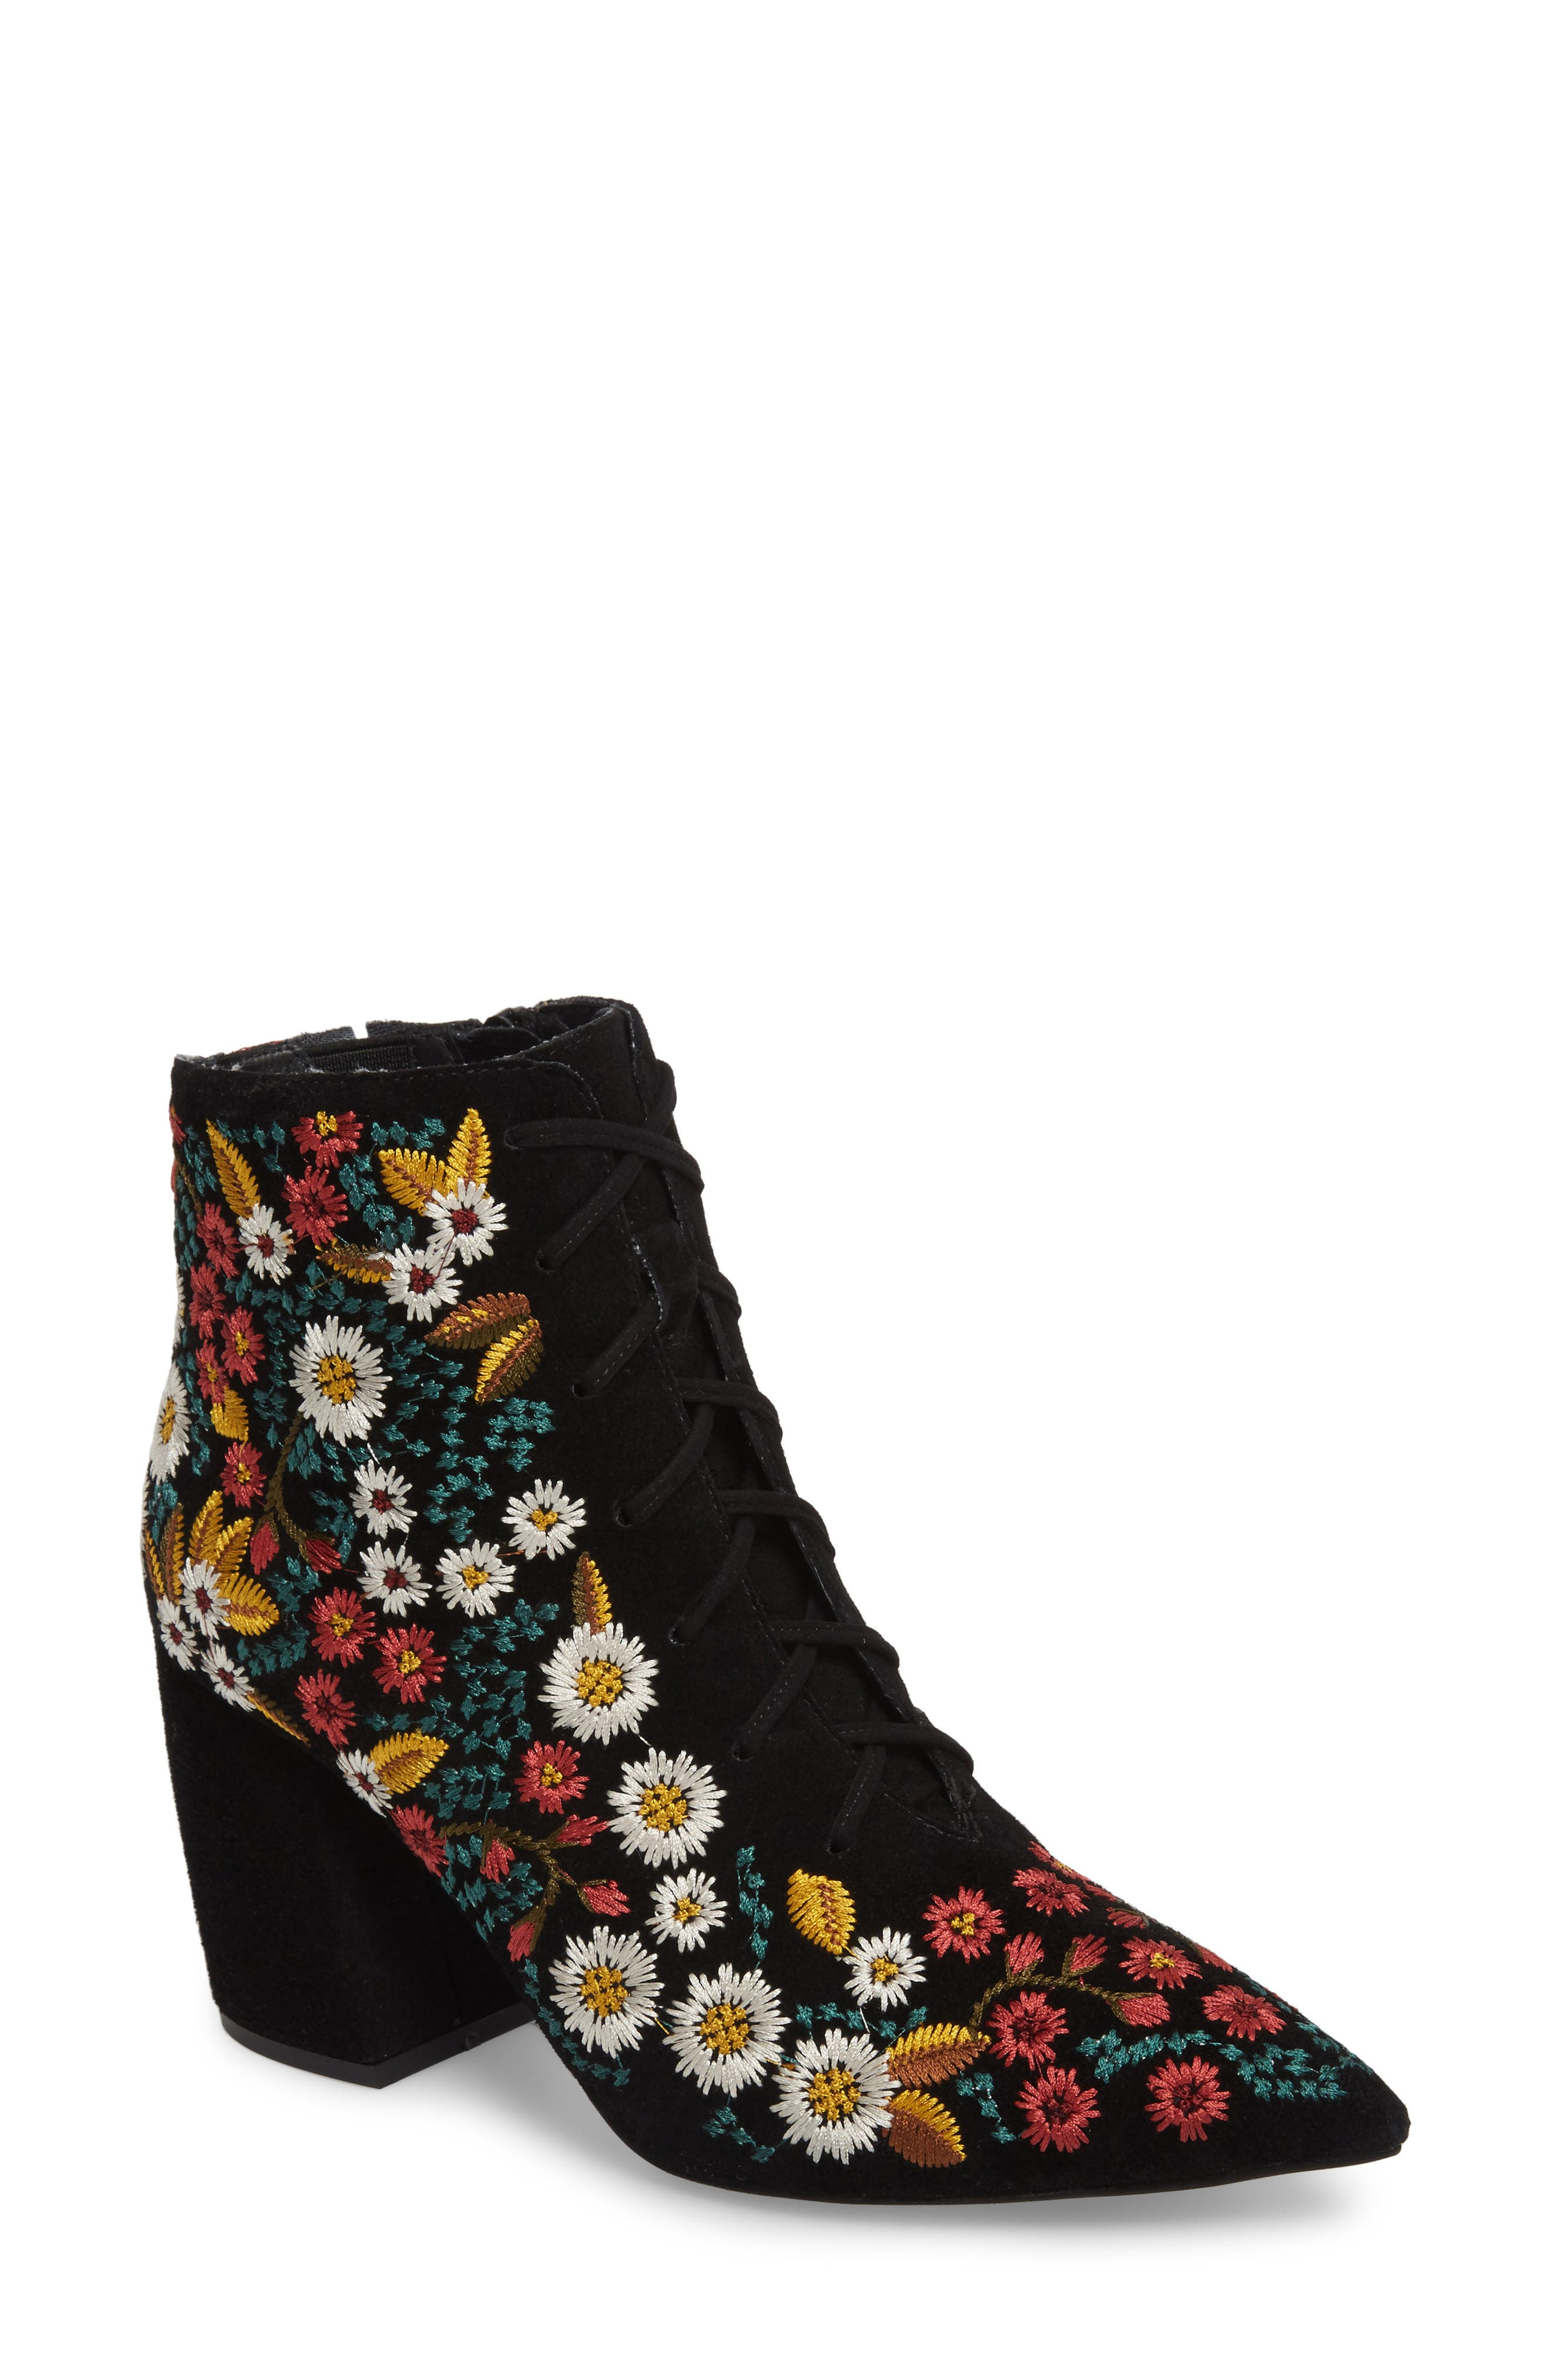 Alternate Image 1 Selected - Jeffrey Campbell Finito Lace-Up Bootie (Women)